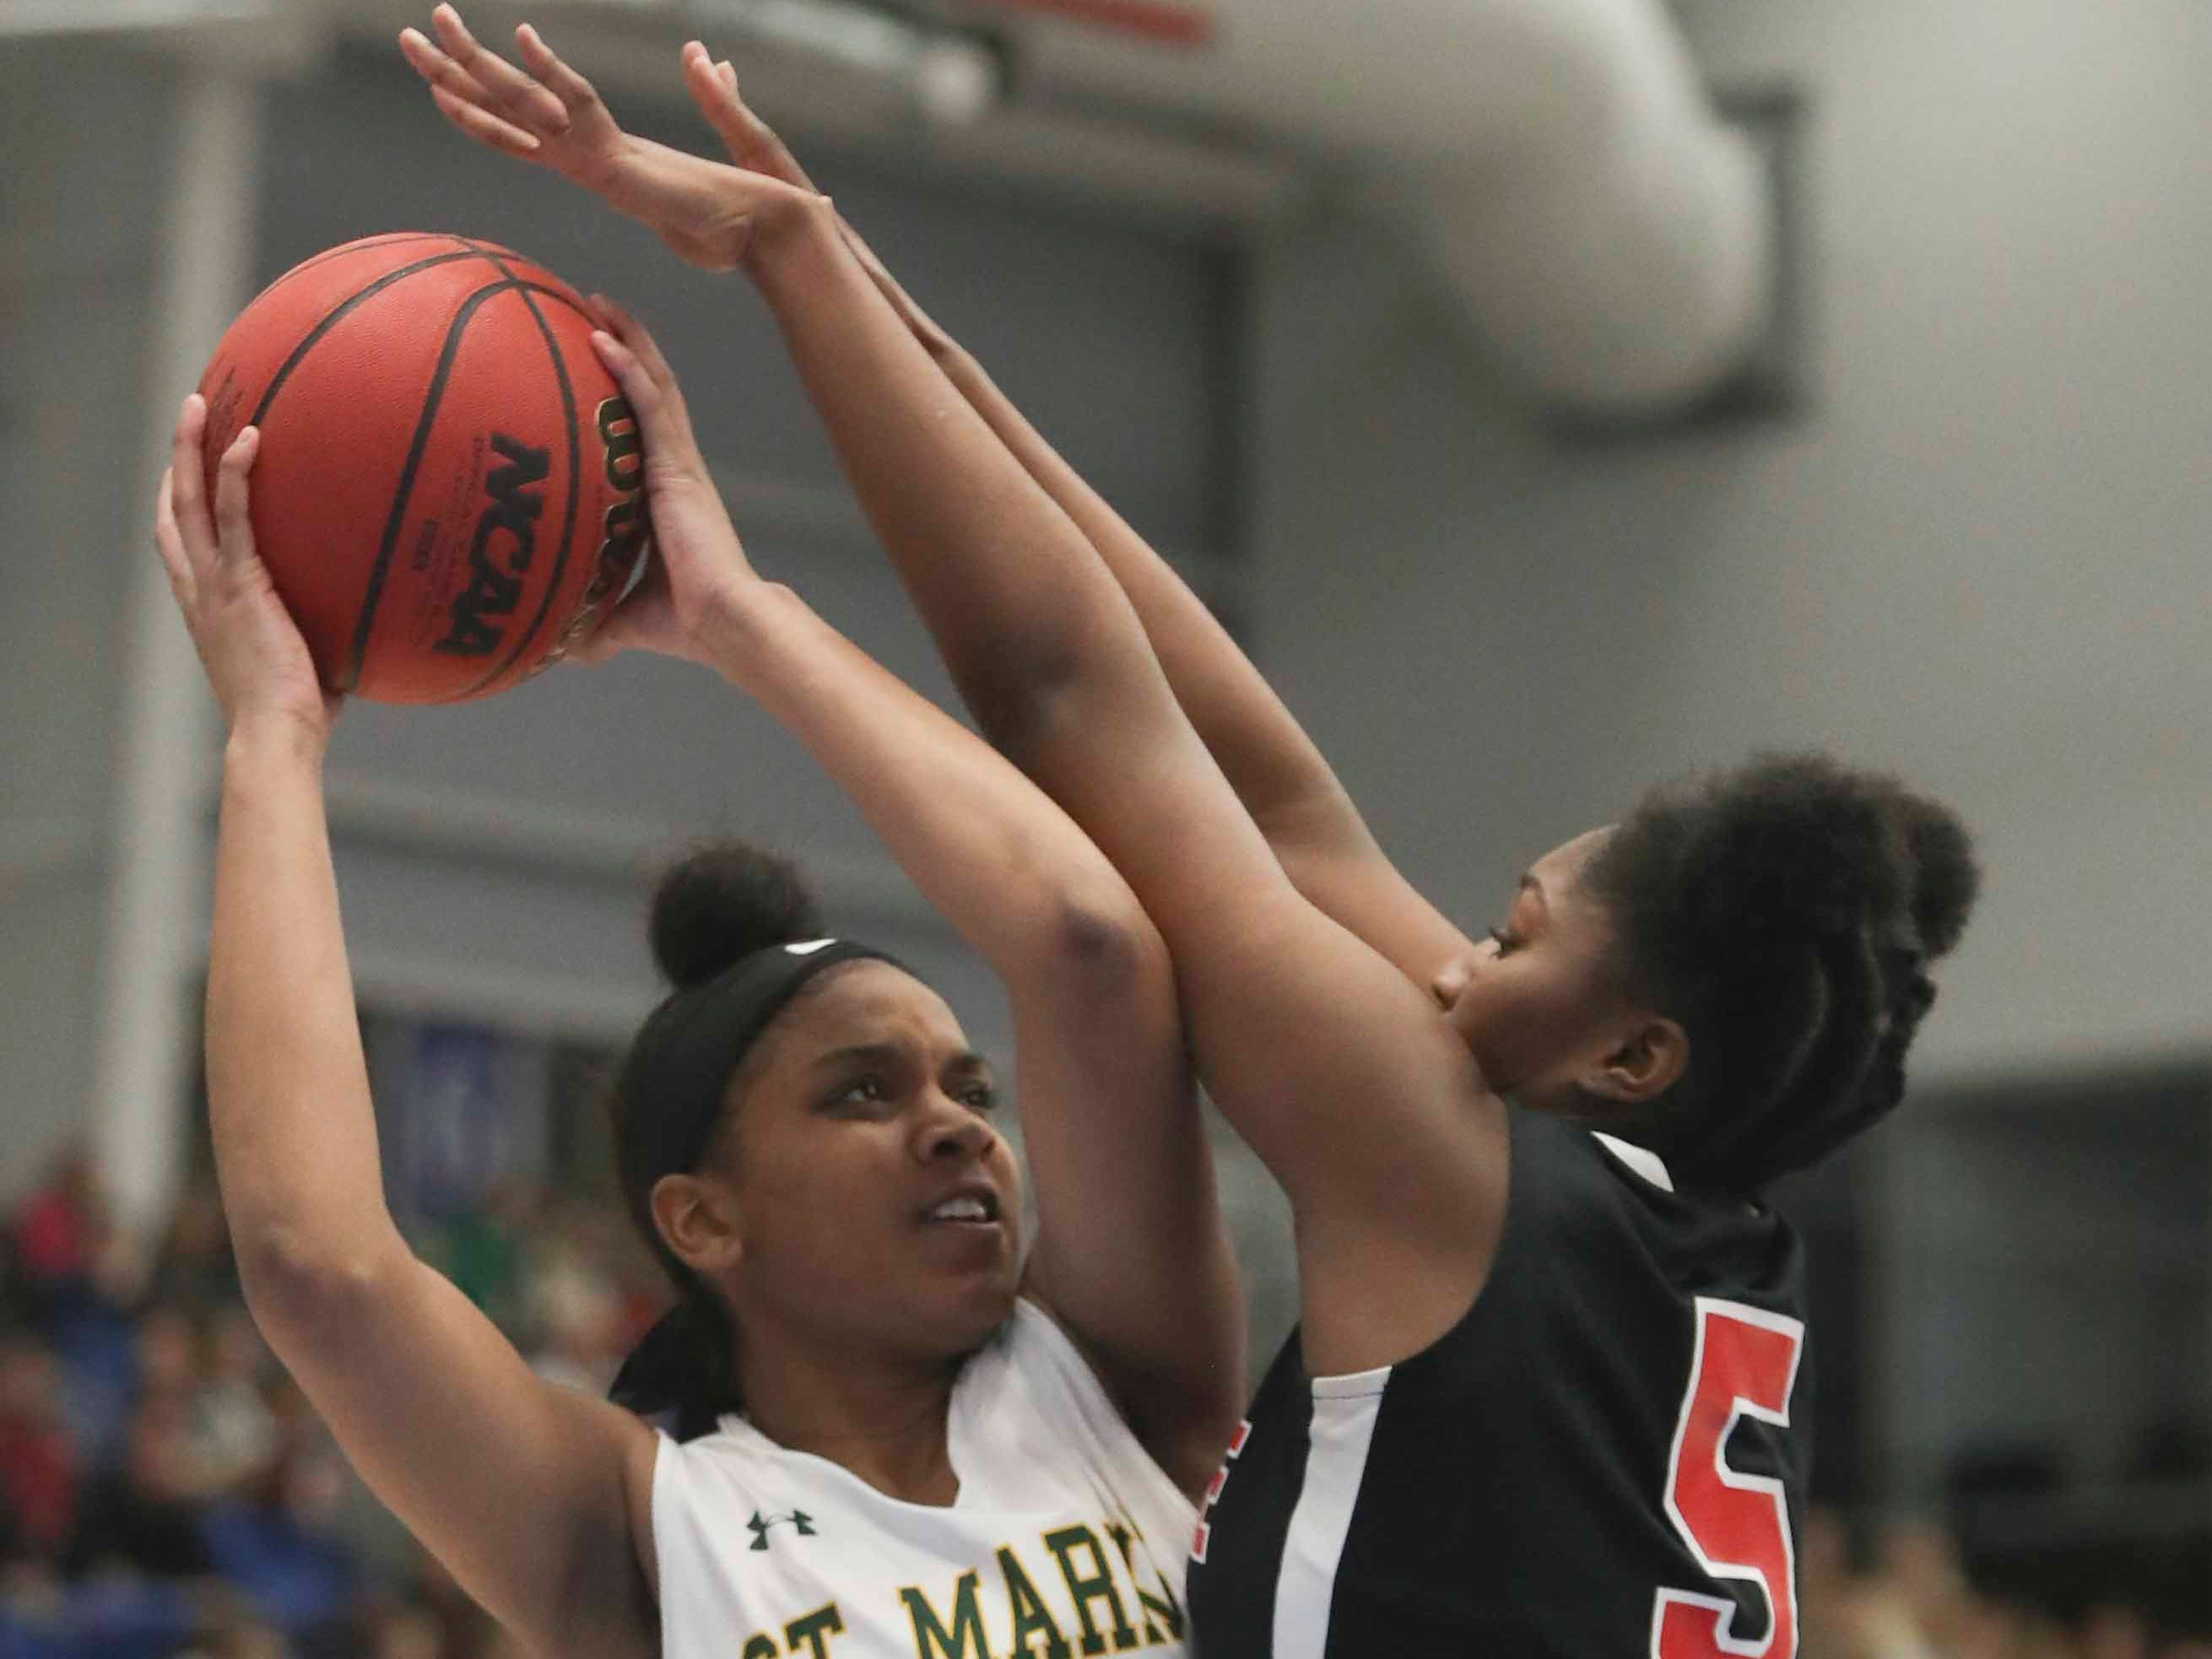 St. Mark's Aniyah Bond tries to pass against Ursuline's Kay Wulah in the SL24 Memorial Basketball Classic at the 76ers Fieldhouse in Wilmington Friday.